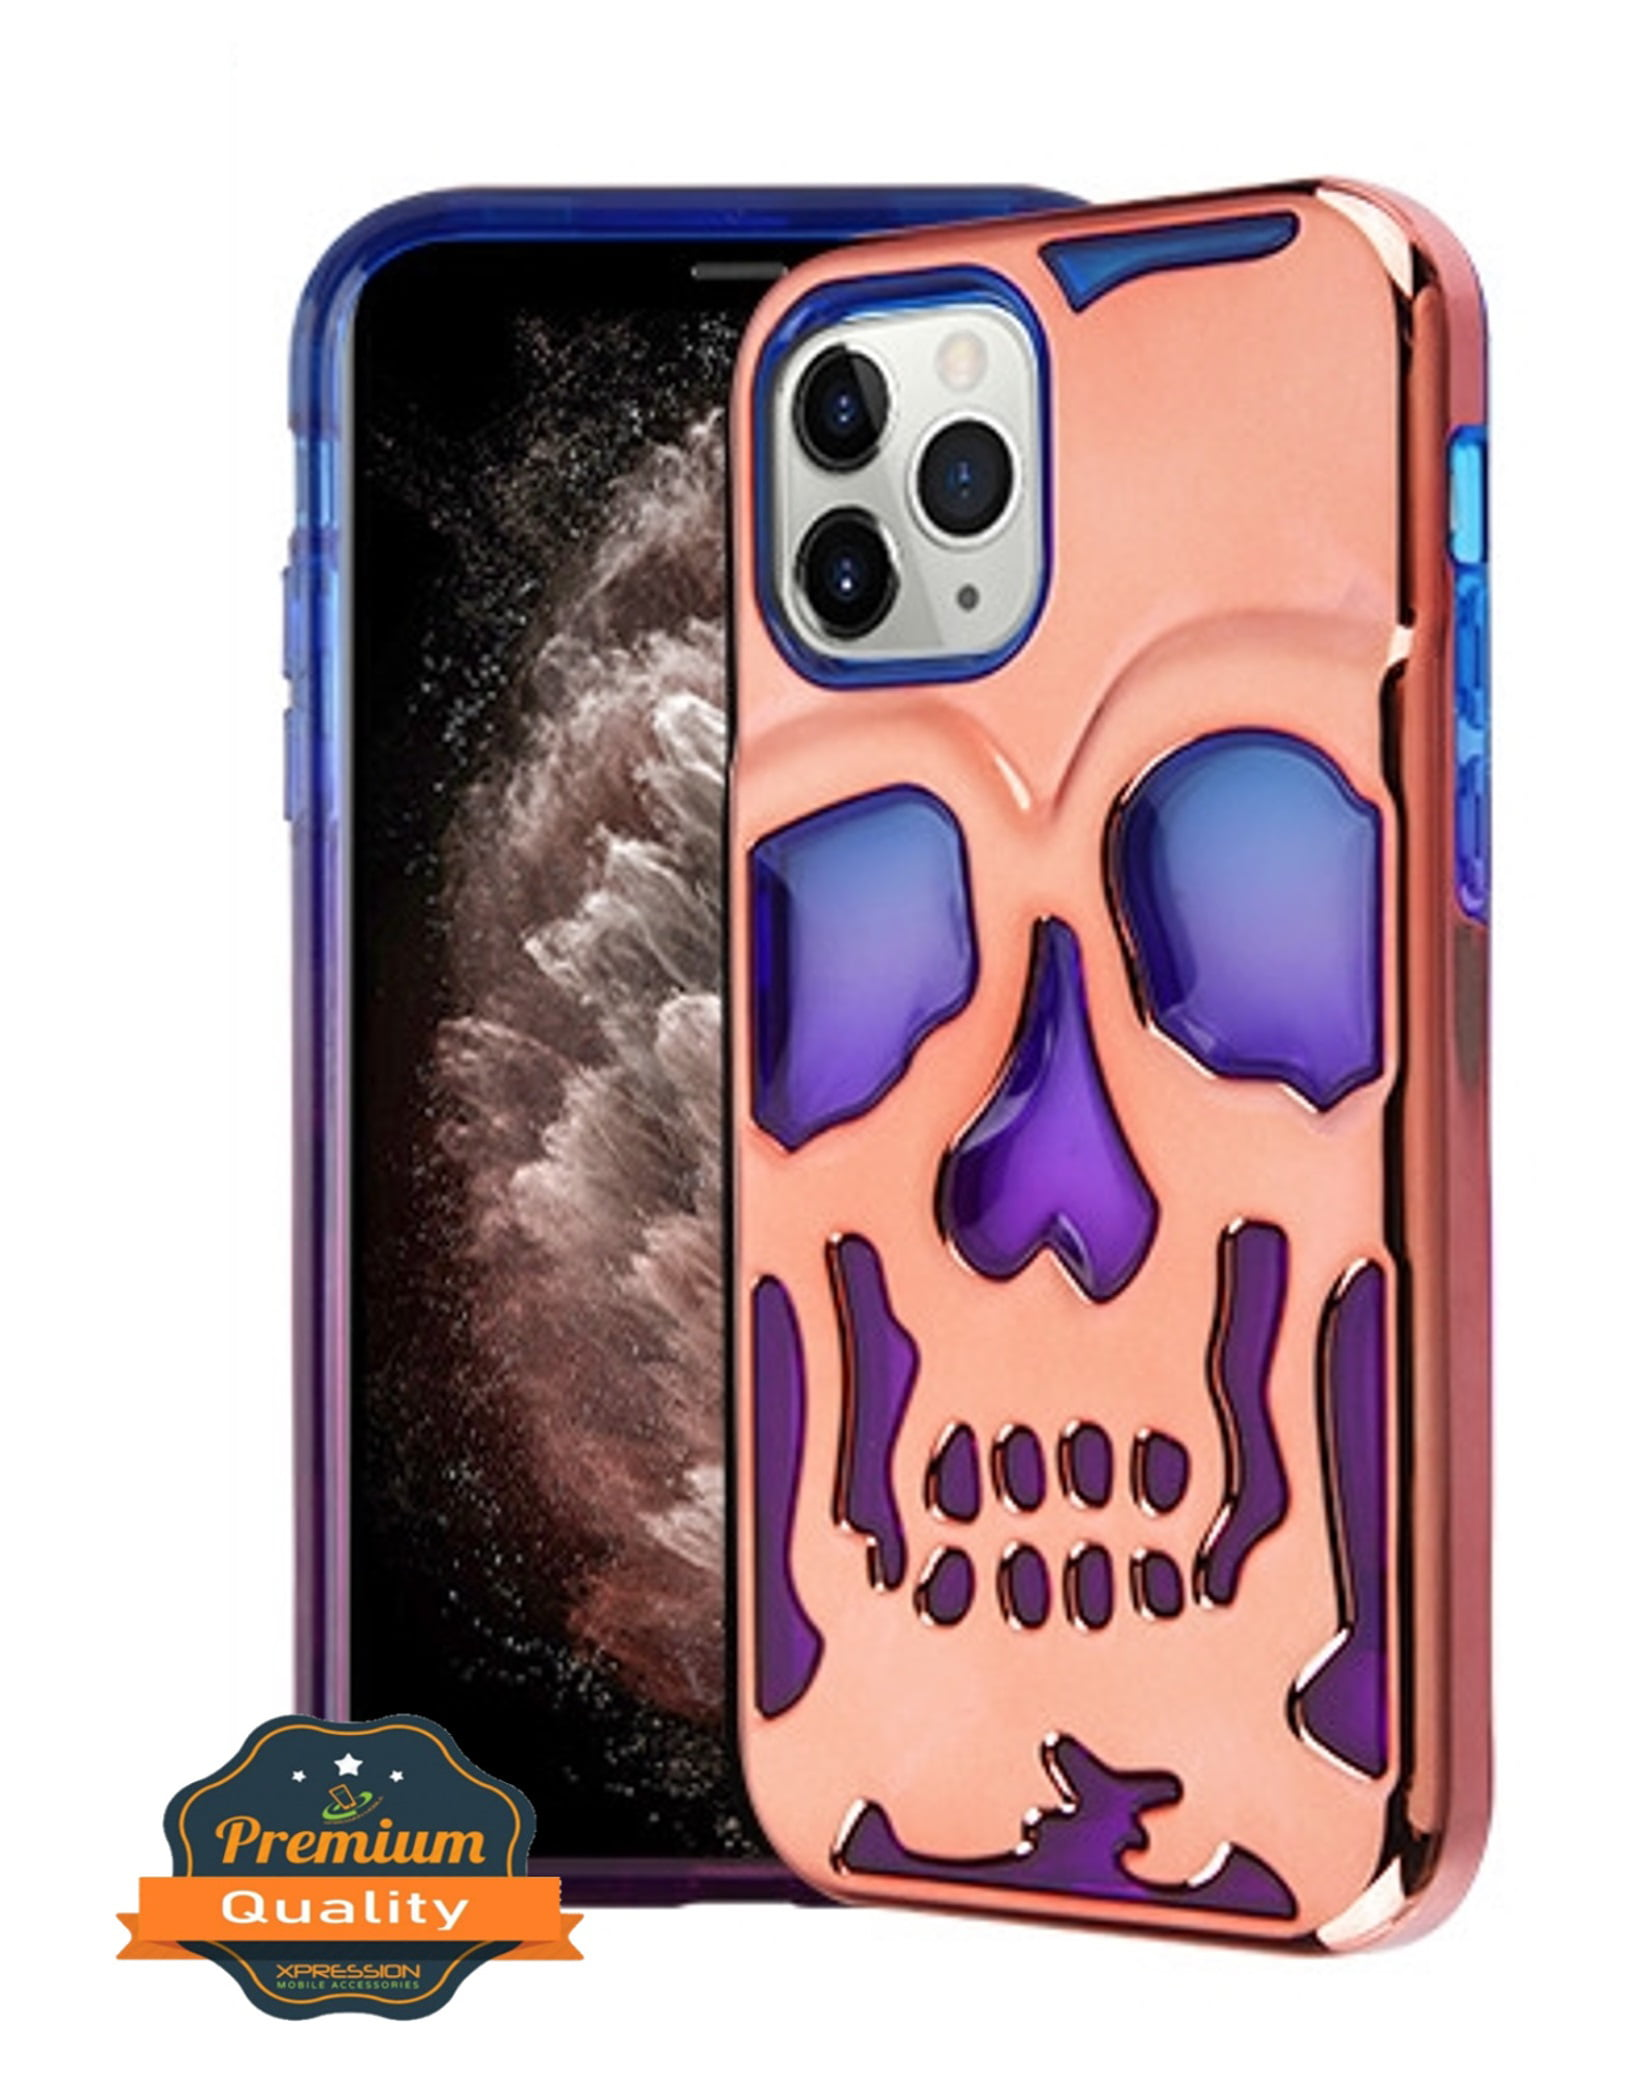 Apple Iphone 11 Pro Phone Case Hybrid Skeleton Shockproof Armor Impact Rubber Dual Layer Hard Soft Tpu Rugged Protective Cover Skull Blue Purple Rose Gold Plating Phone Cover For Apple Iphone 11